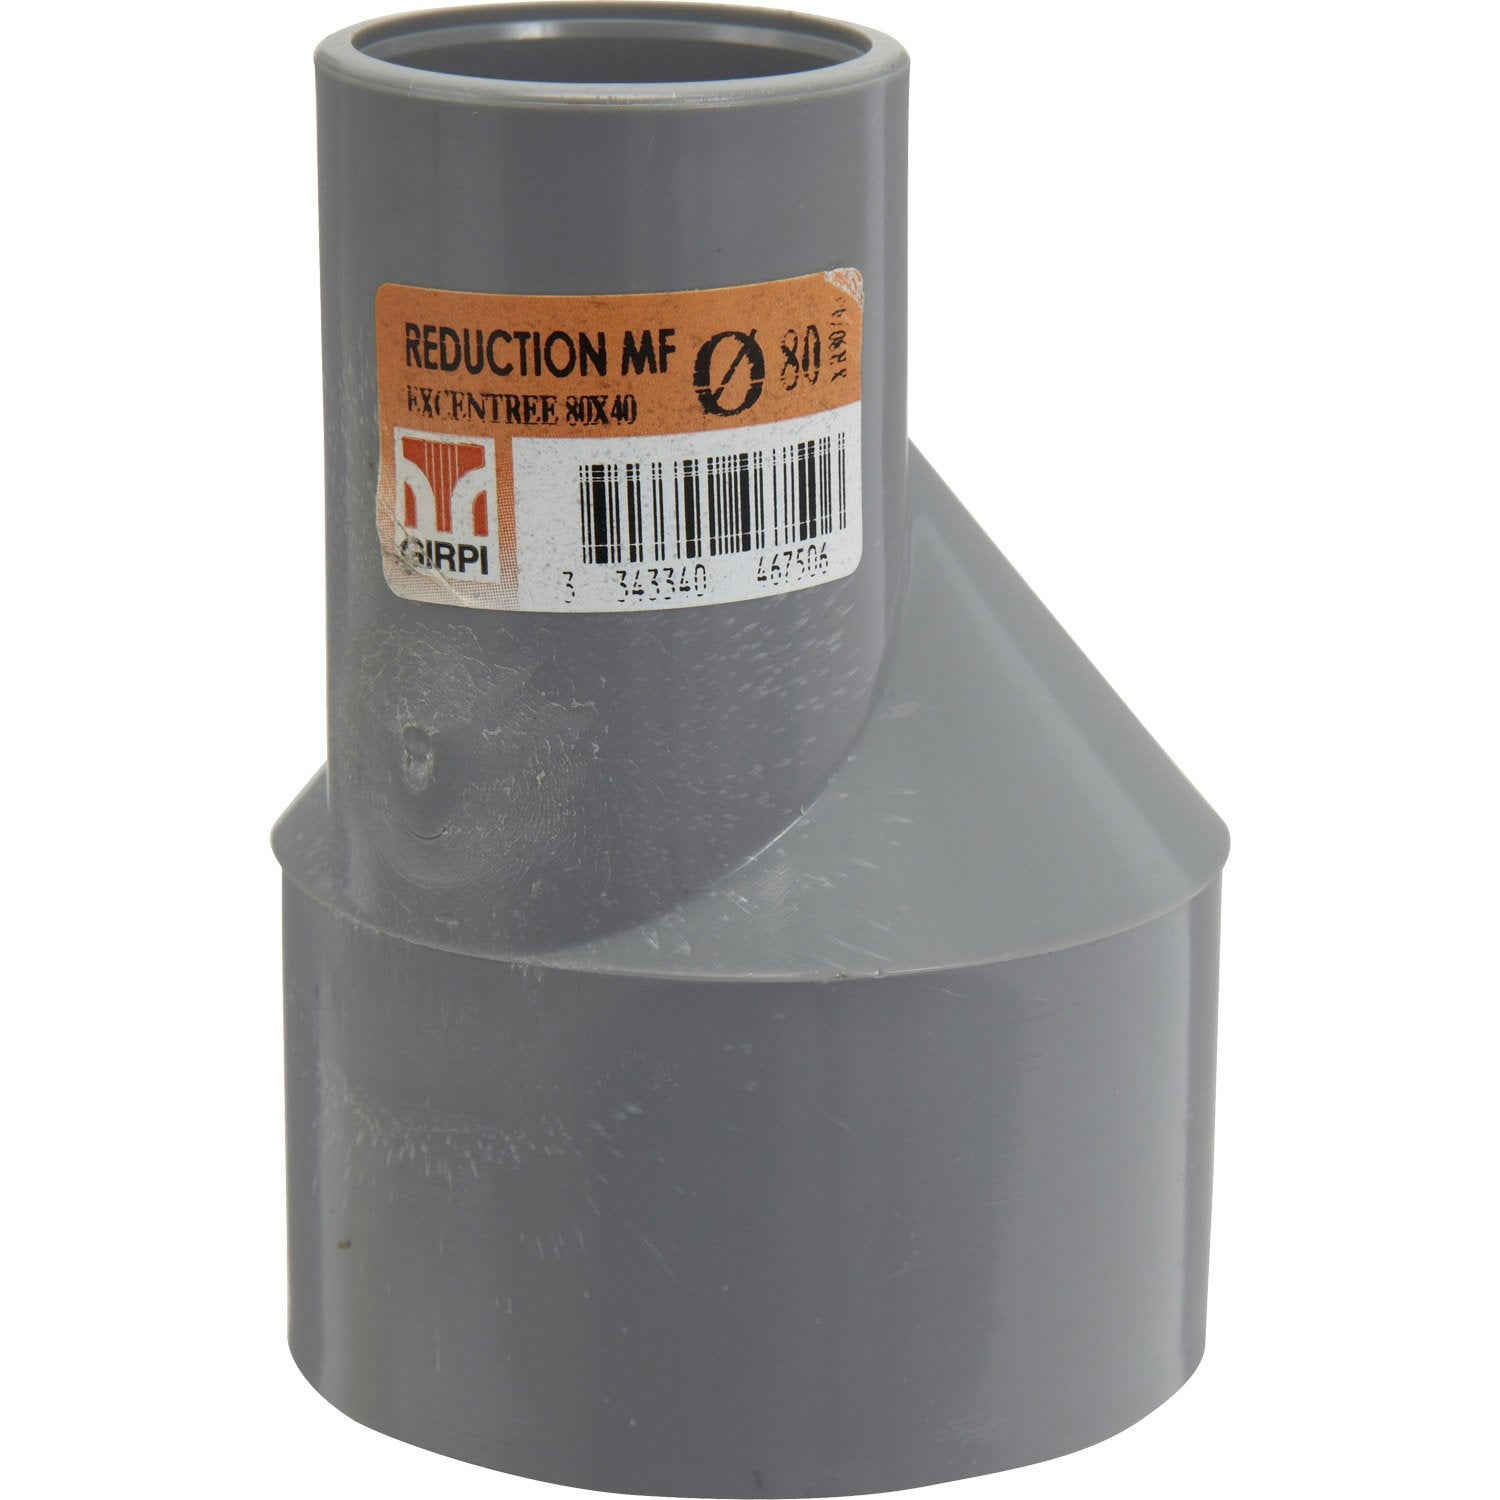 R duction excentr e en pvc d80 d40 leroy merlin - Code reduction leroy merlin ...